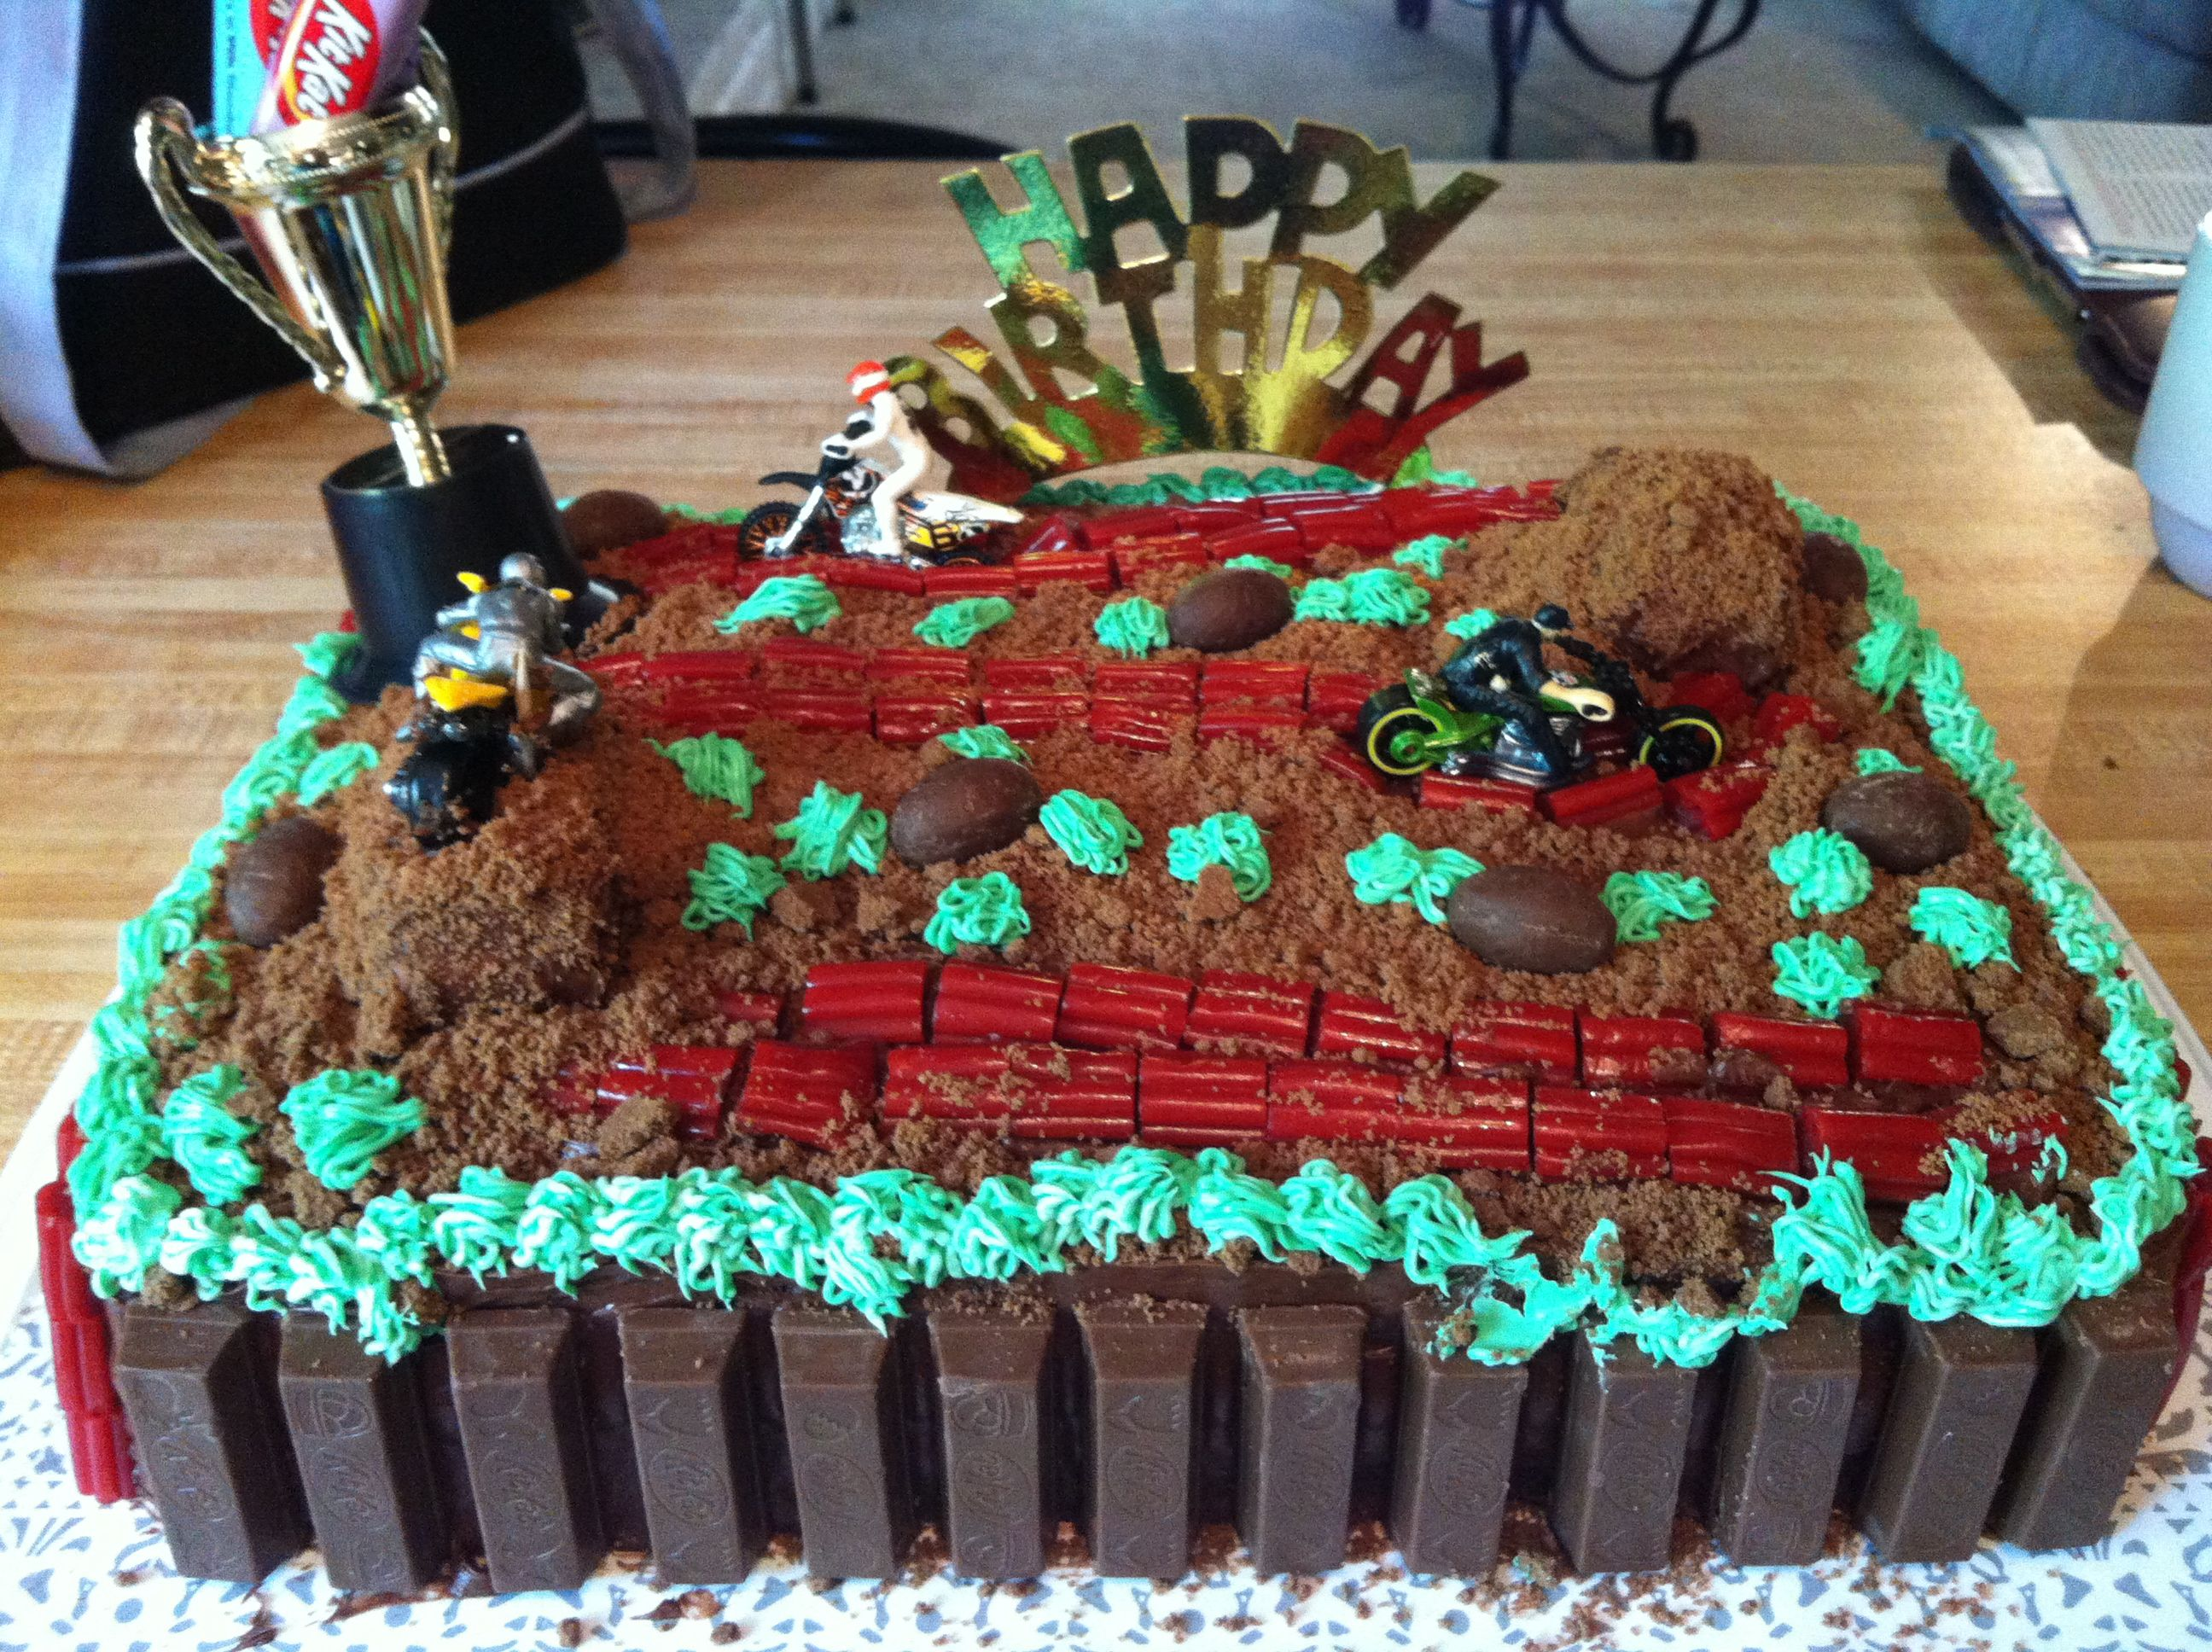 Admirable Dirt Bike Birthday Cake For My 7 Year Old The Hills Are Made Of Personalised Birthday Cards Paralily Jamesorg